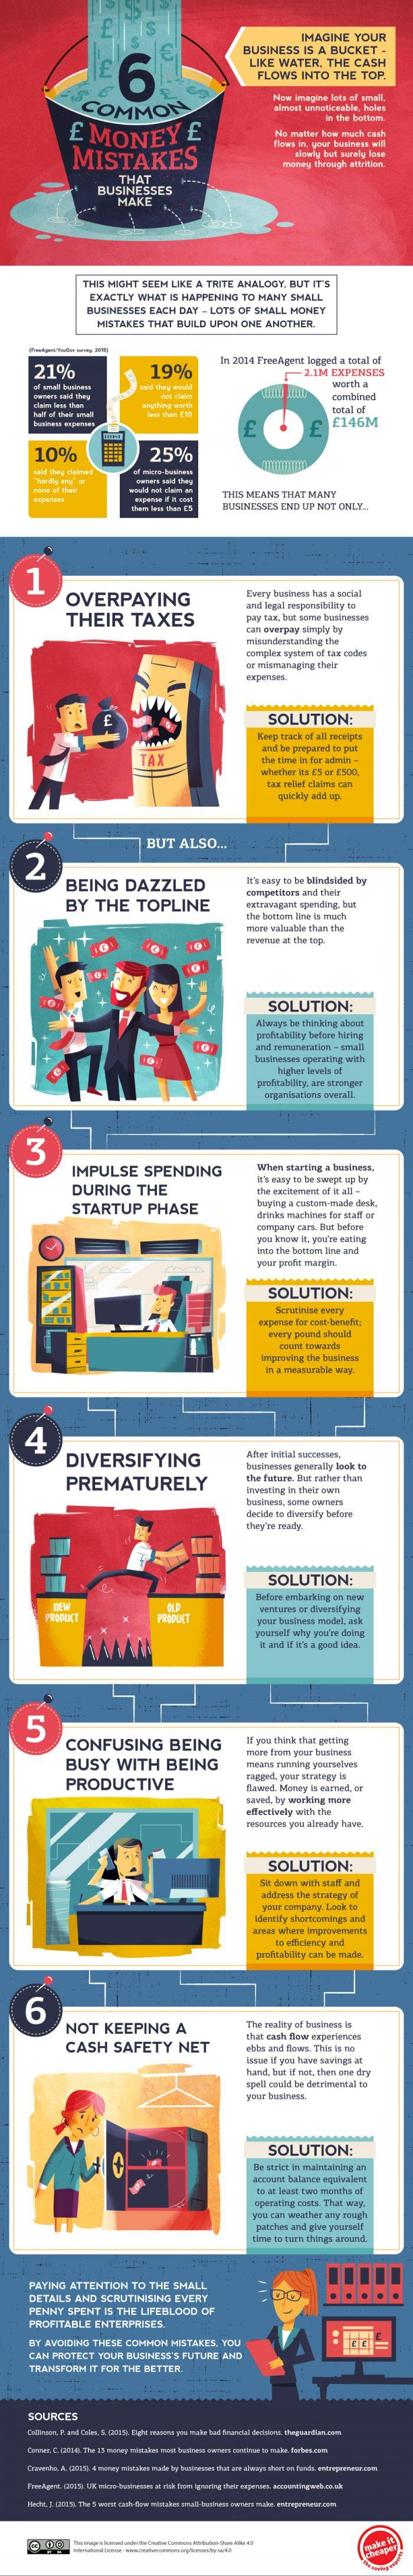 6-common-money-mistakes-that-businesses-make